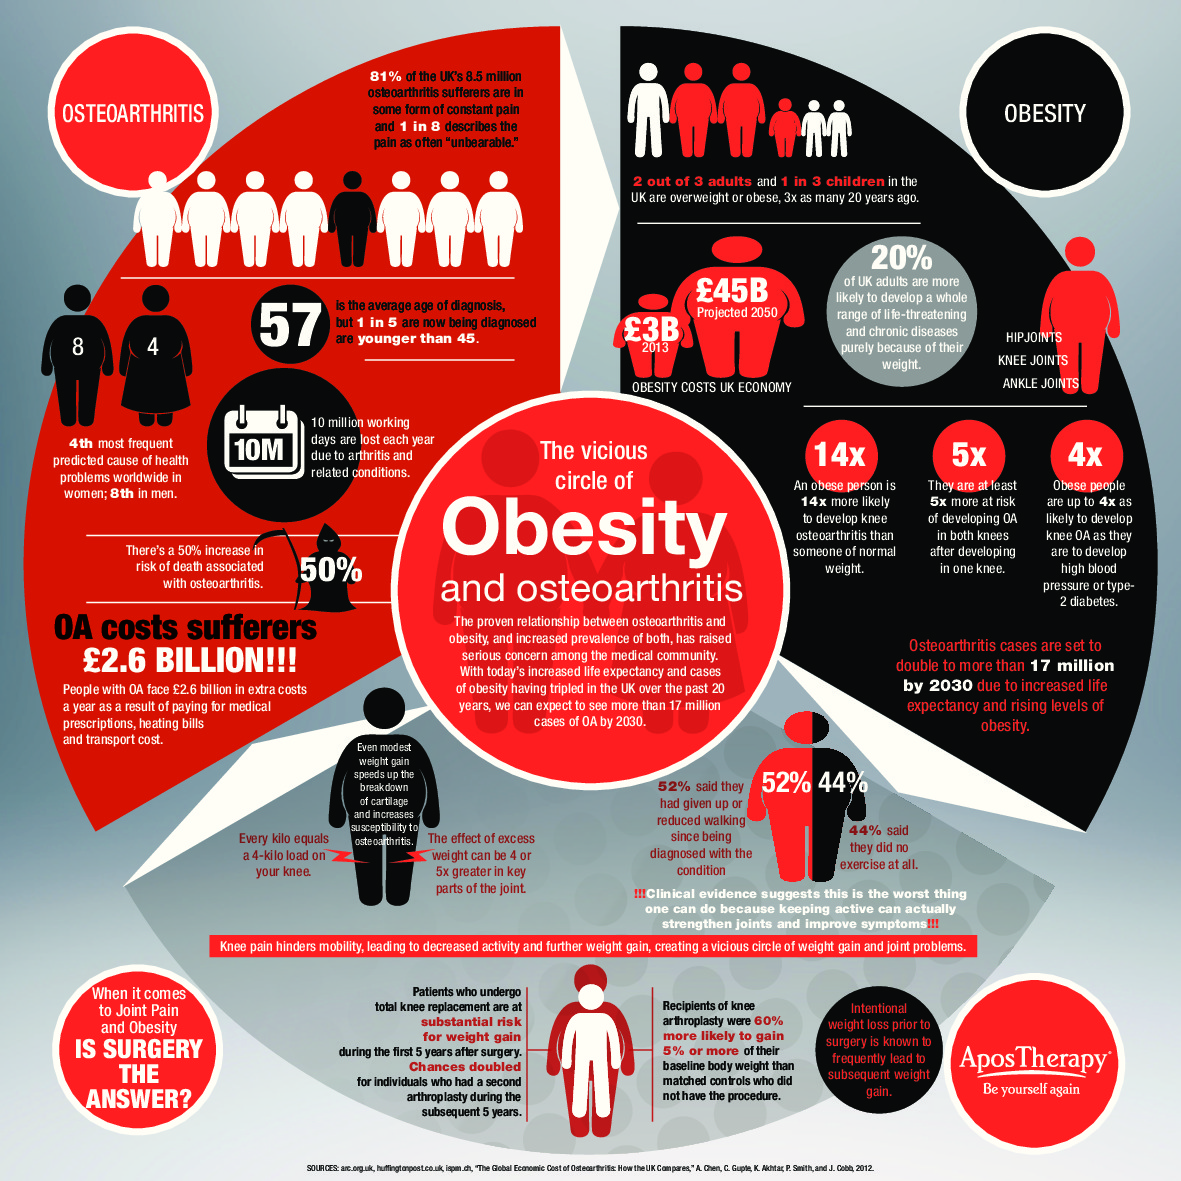 The Obesity and Osteoarthritis Relationship